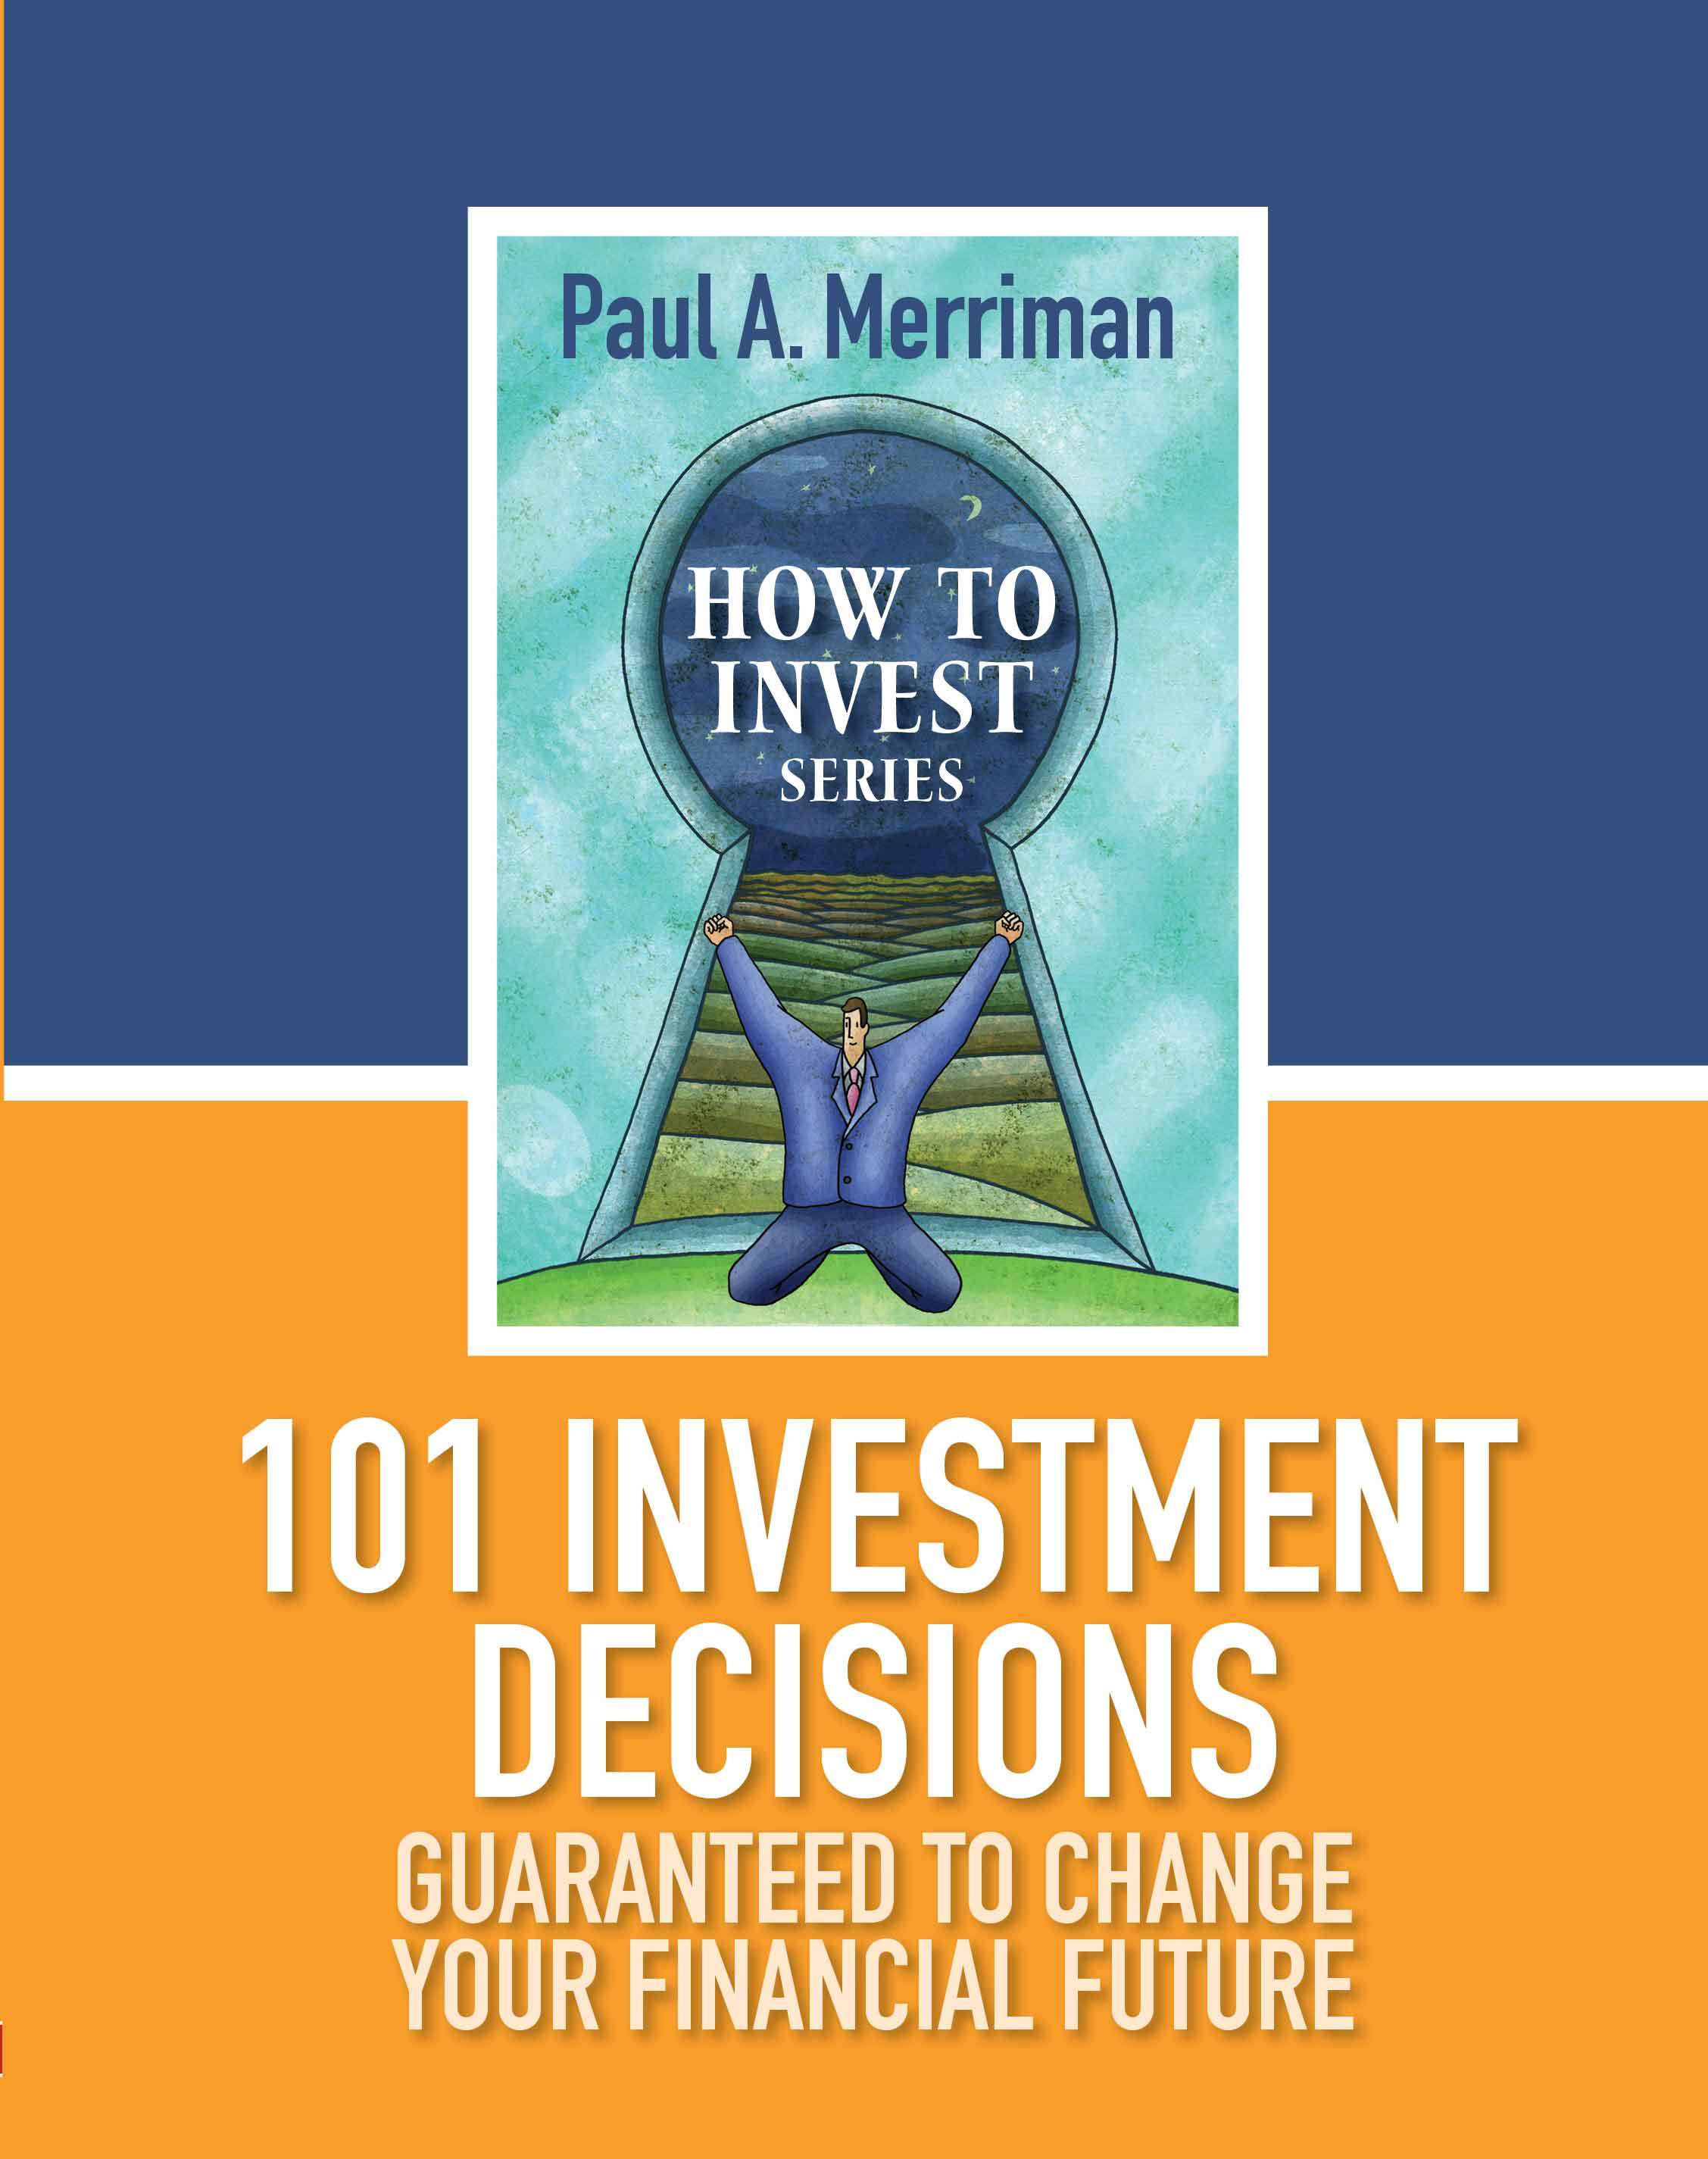 101 Investment Decisions Guaranteed to Change Your Financial Future